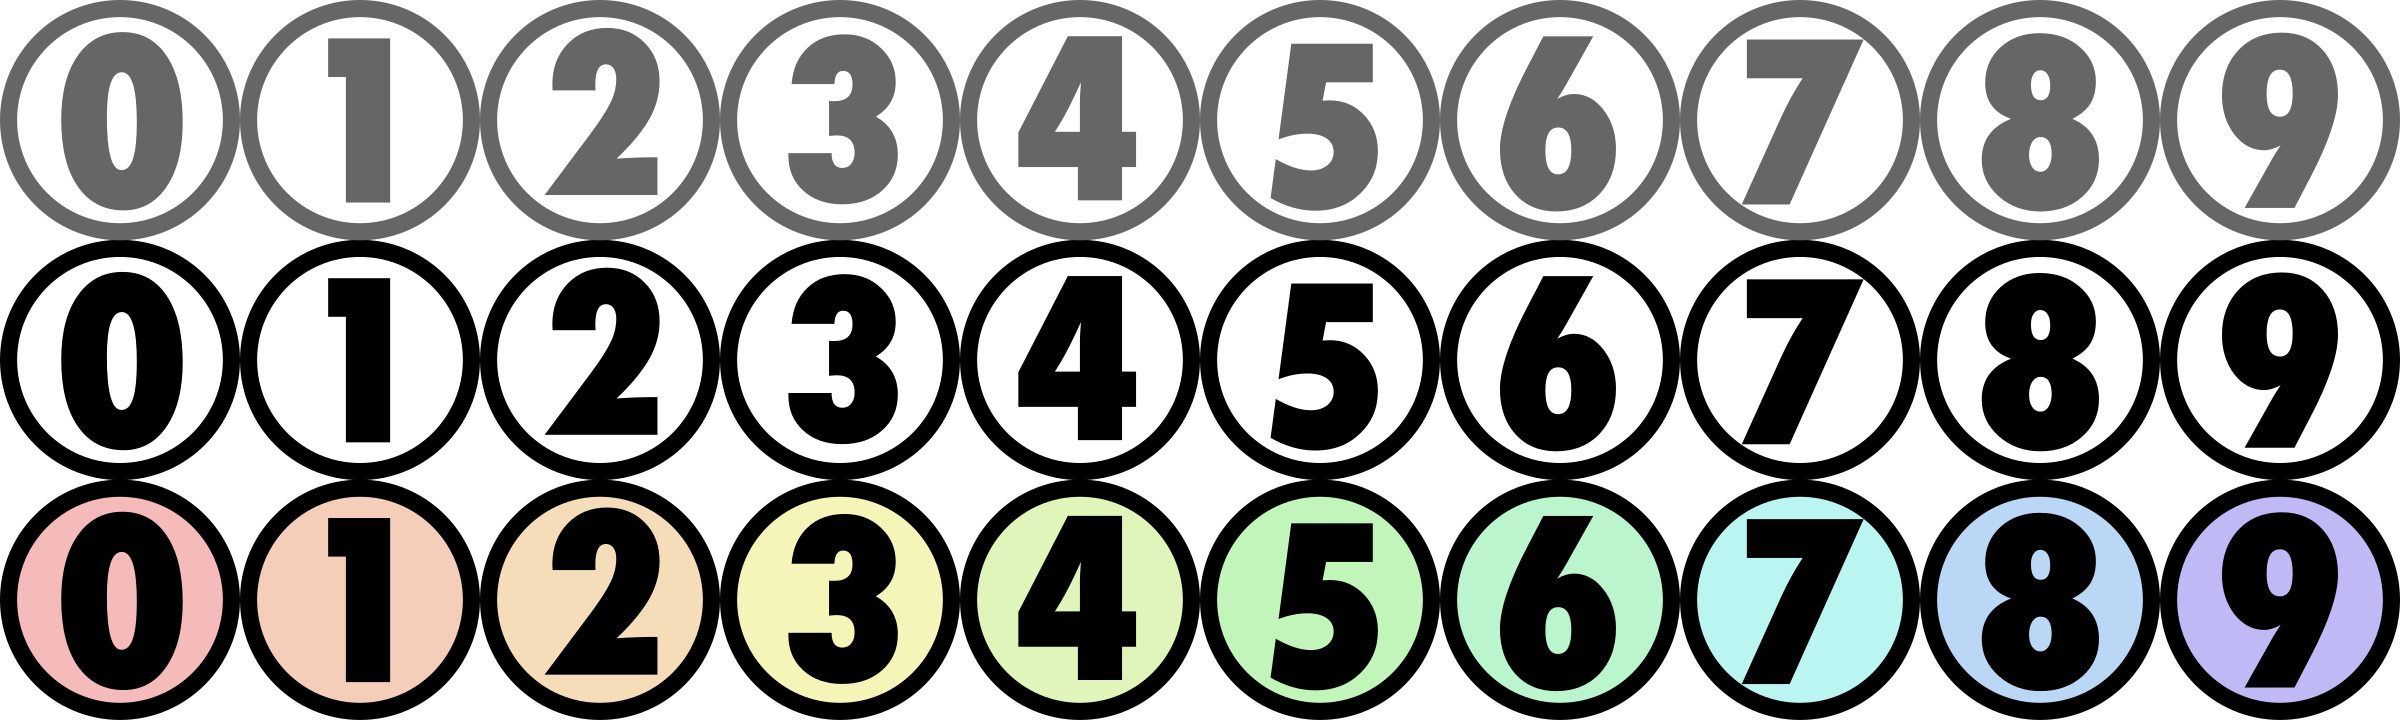 Number icons for CSS slicing by darth_schmoo